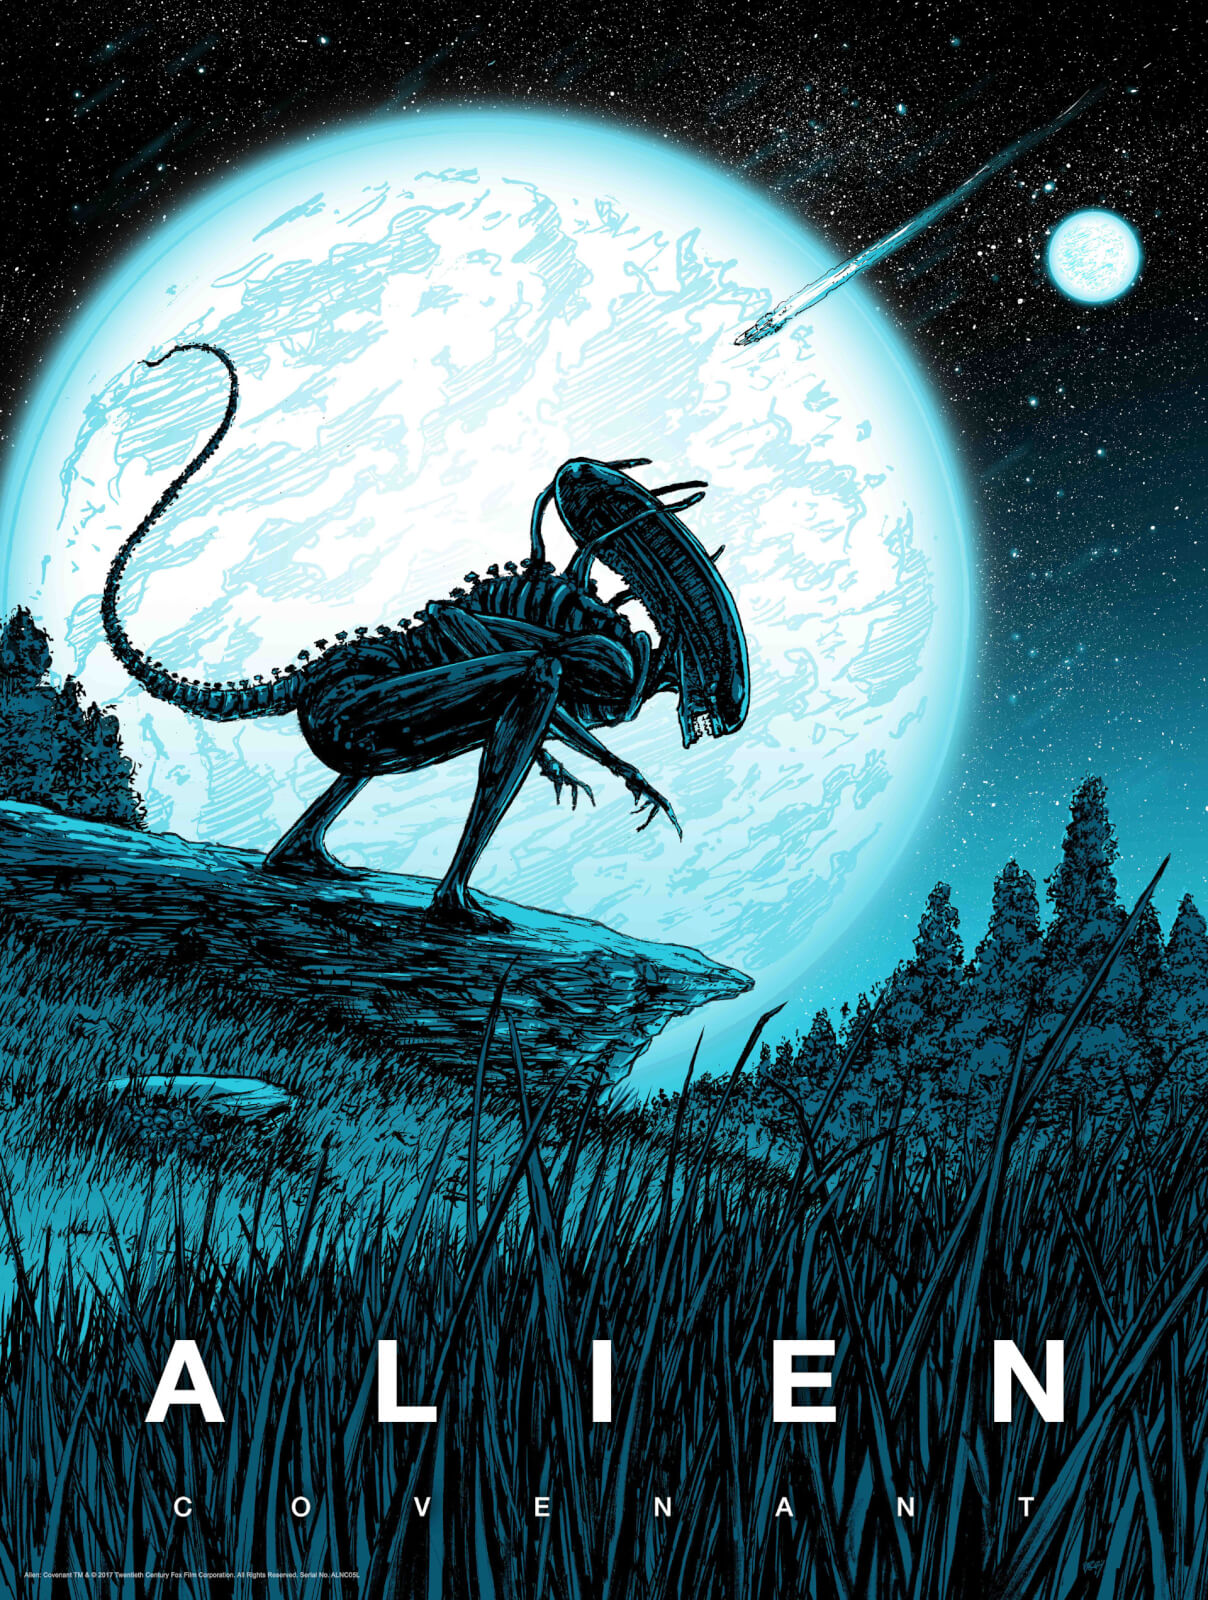 Alien Covenant By Barry Blankenship With A Glow-In-The-Dark Layer - Zavvi Exclusive Limited Edition